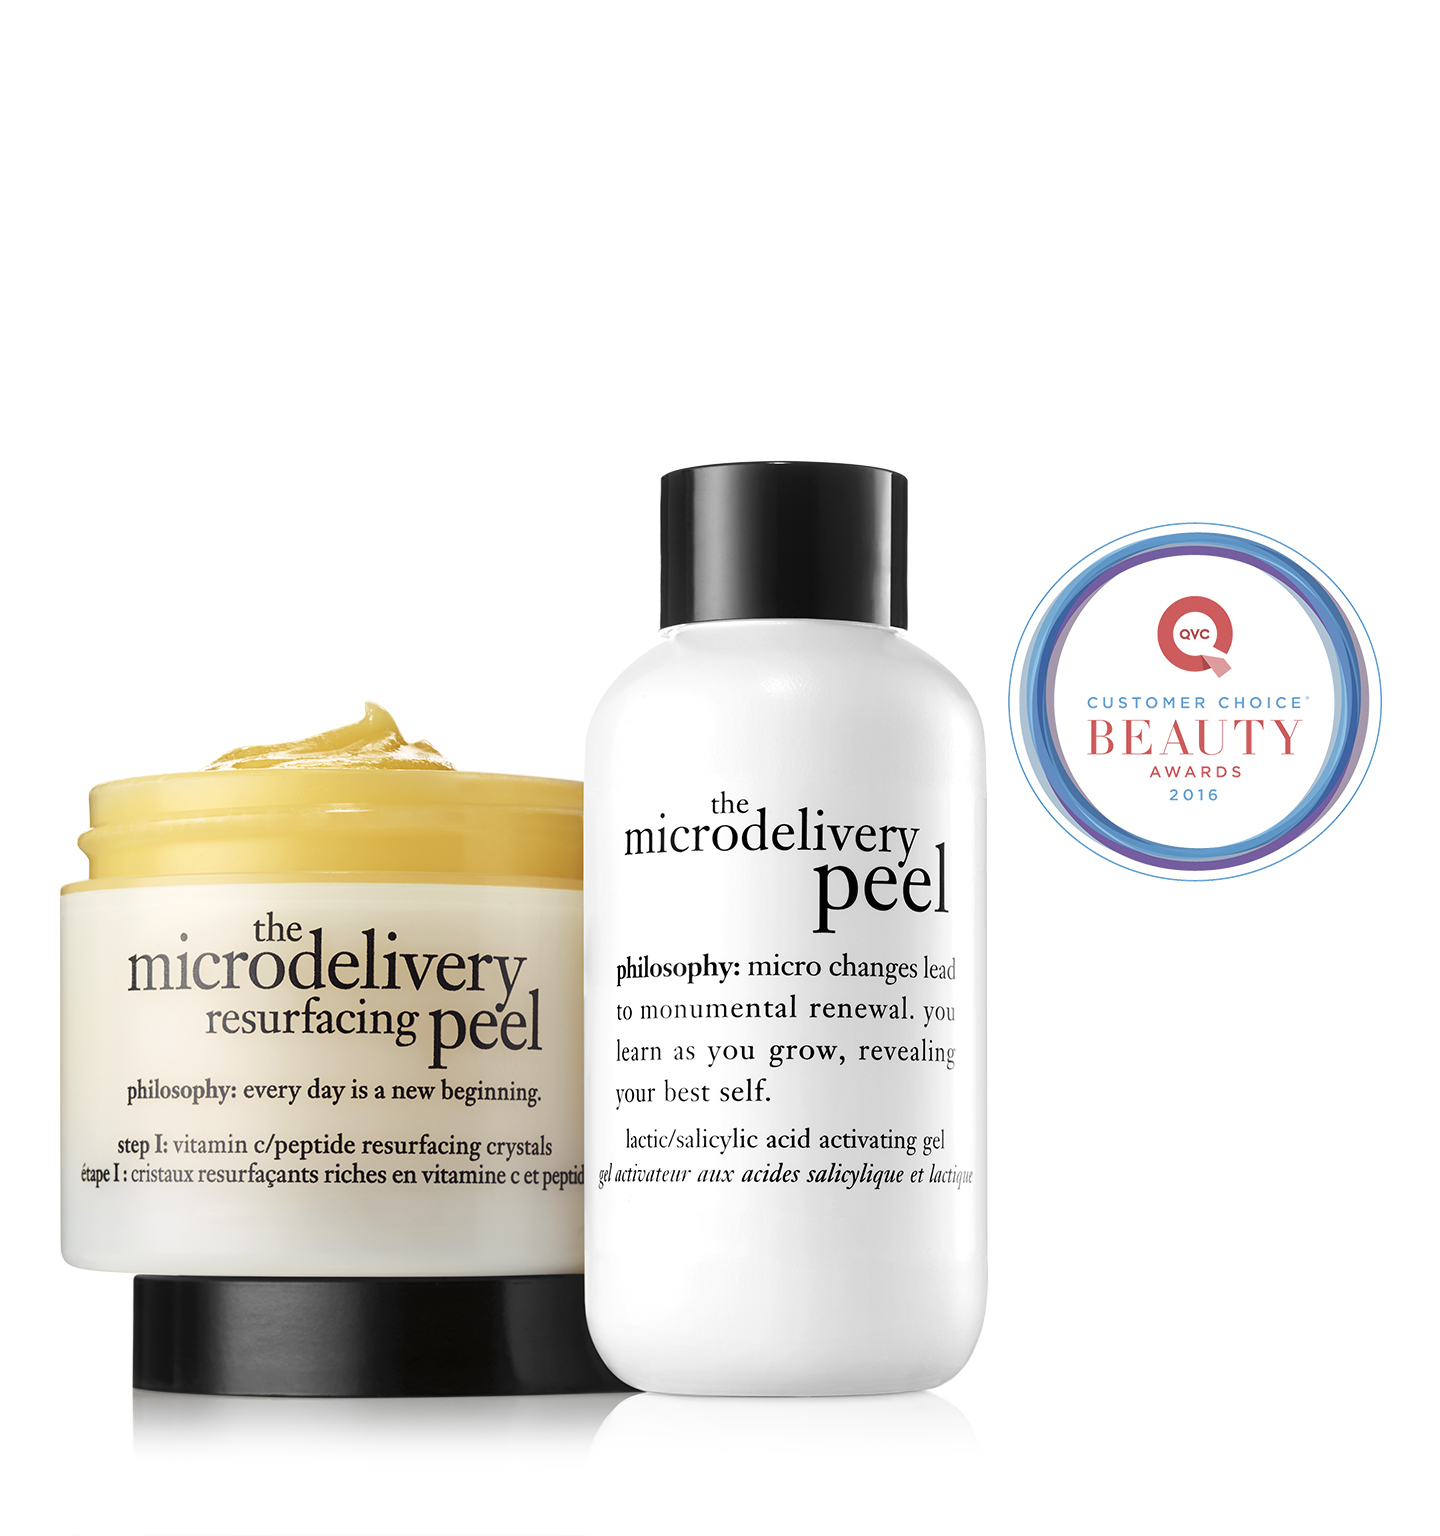 the microdelivery | in home vitamin c/peptide peel | philosophy